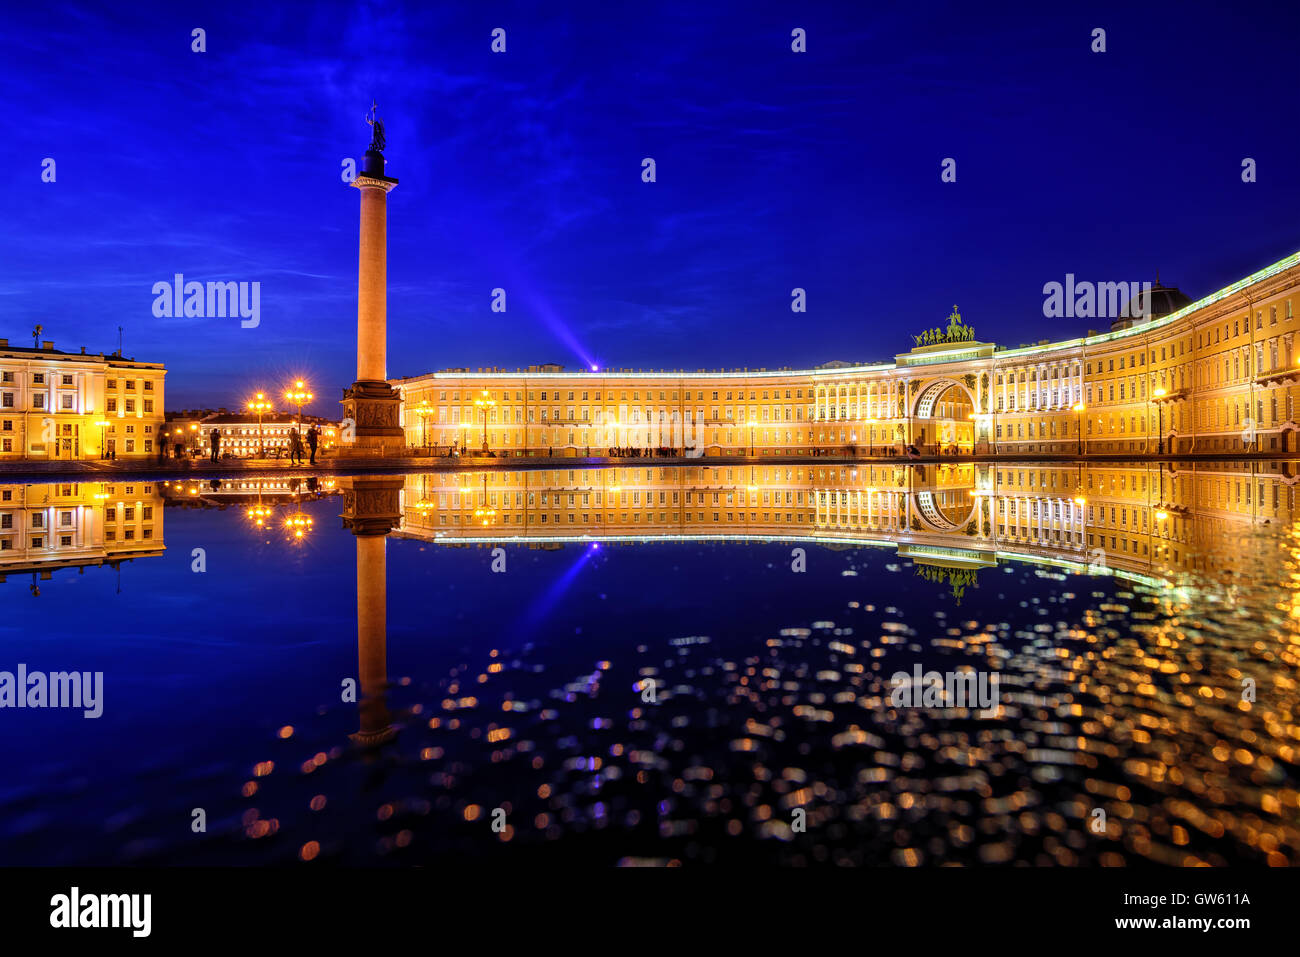 General Staff building and Alexander Column reflecting in rain water on Palace Square in St Petersburg, Russia, - Stock Image